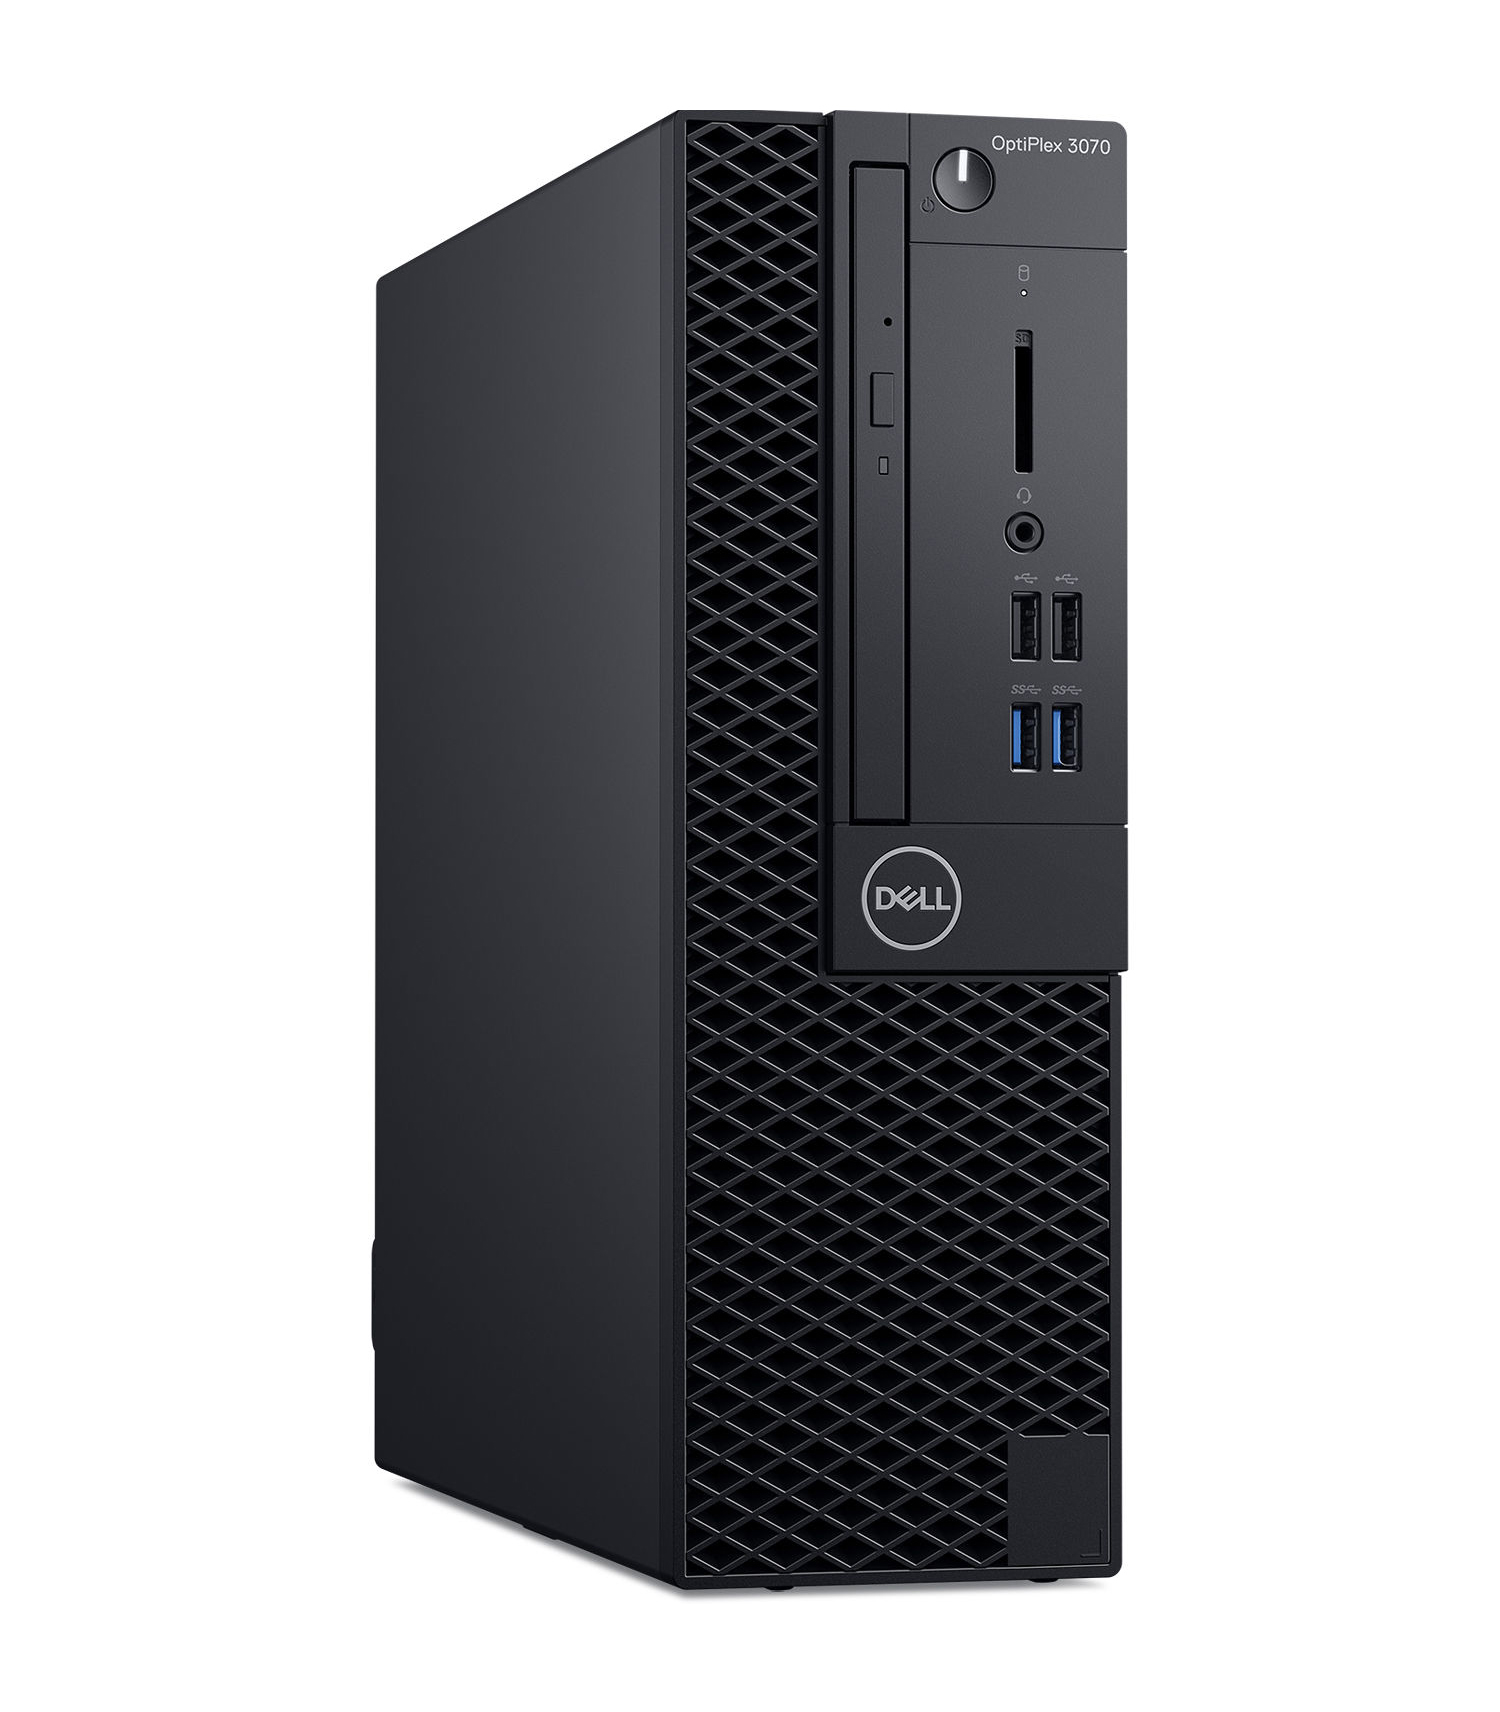 Dell OptiPlex 3070 Minitower 8GB